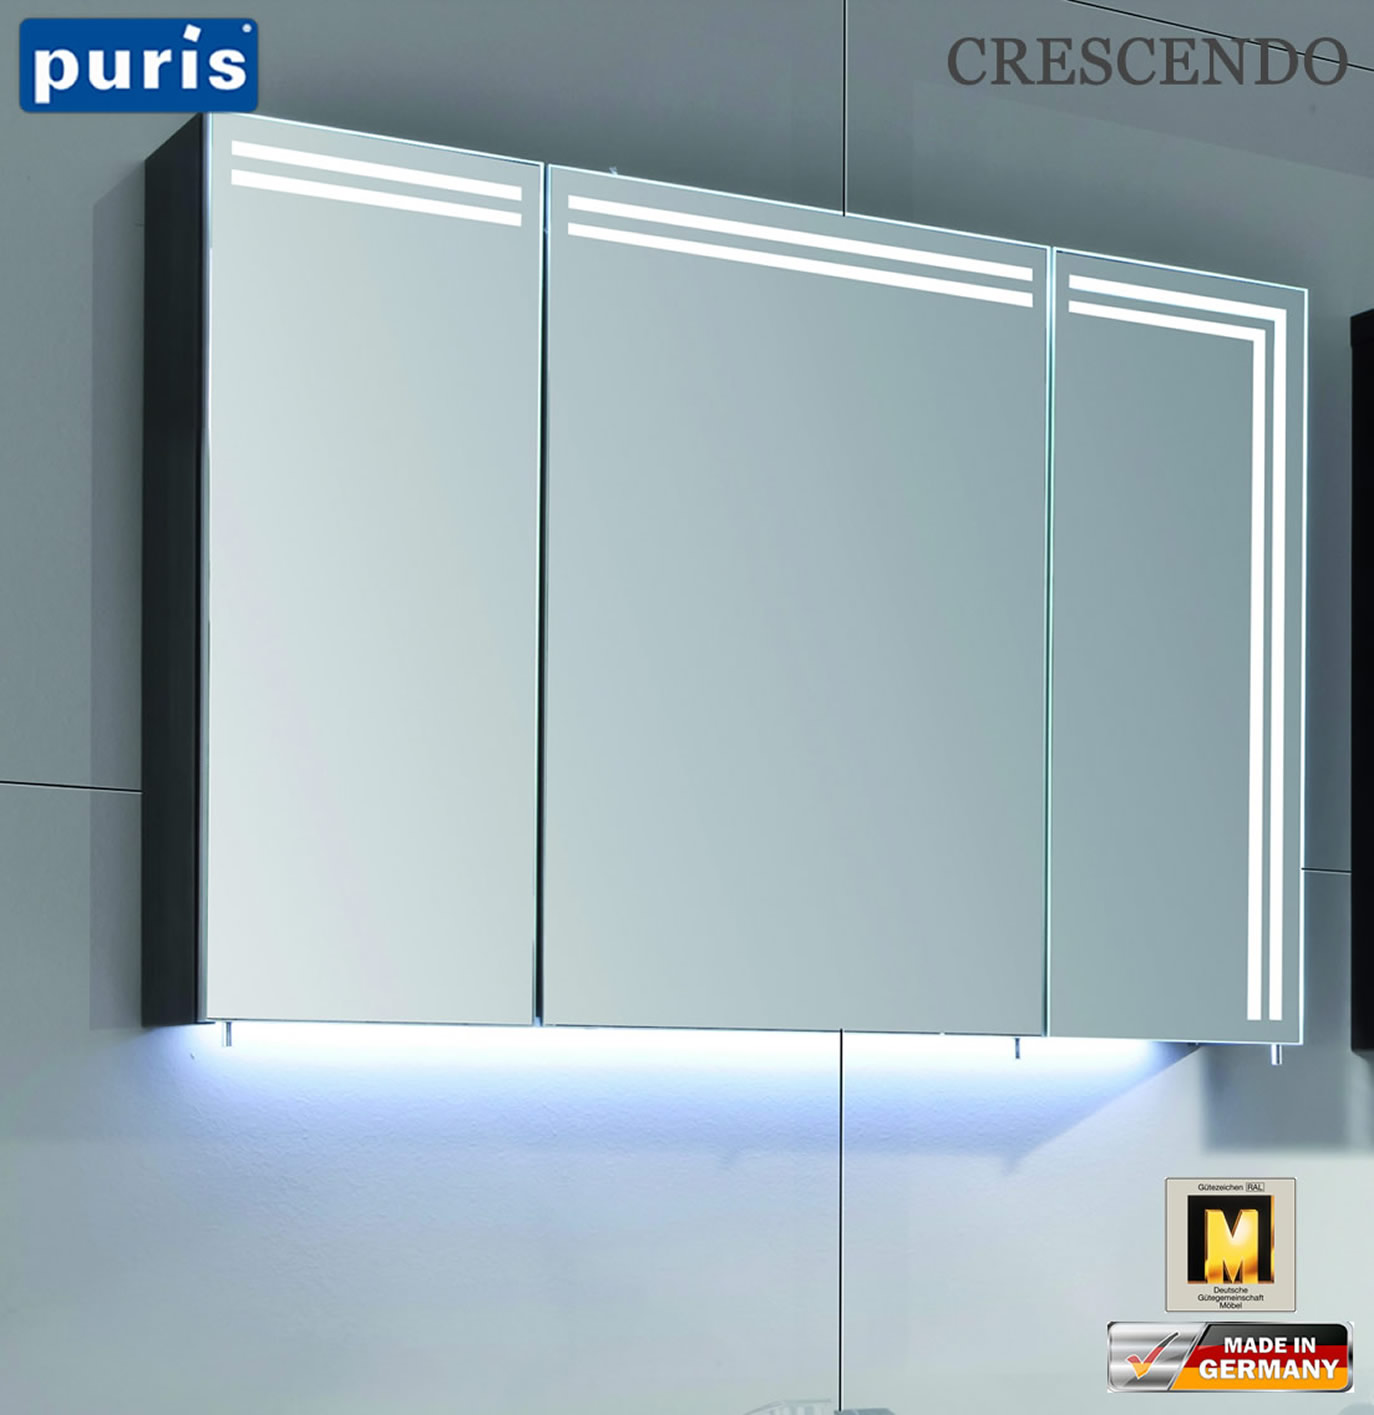 puris crescendo led spiegelschrank 90 cm s2a439l23 impuls home. Black Bedroom Furniture Sets. Home Design Ideas